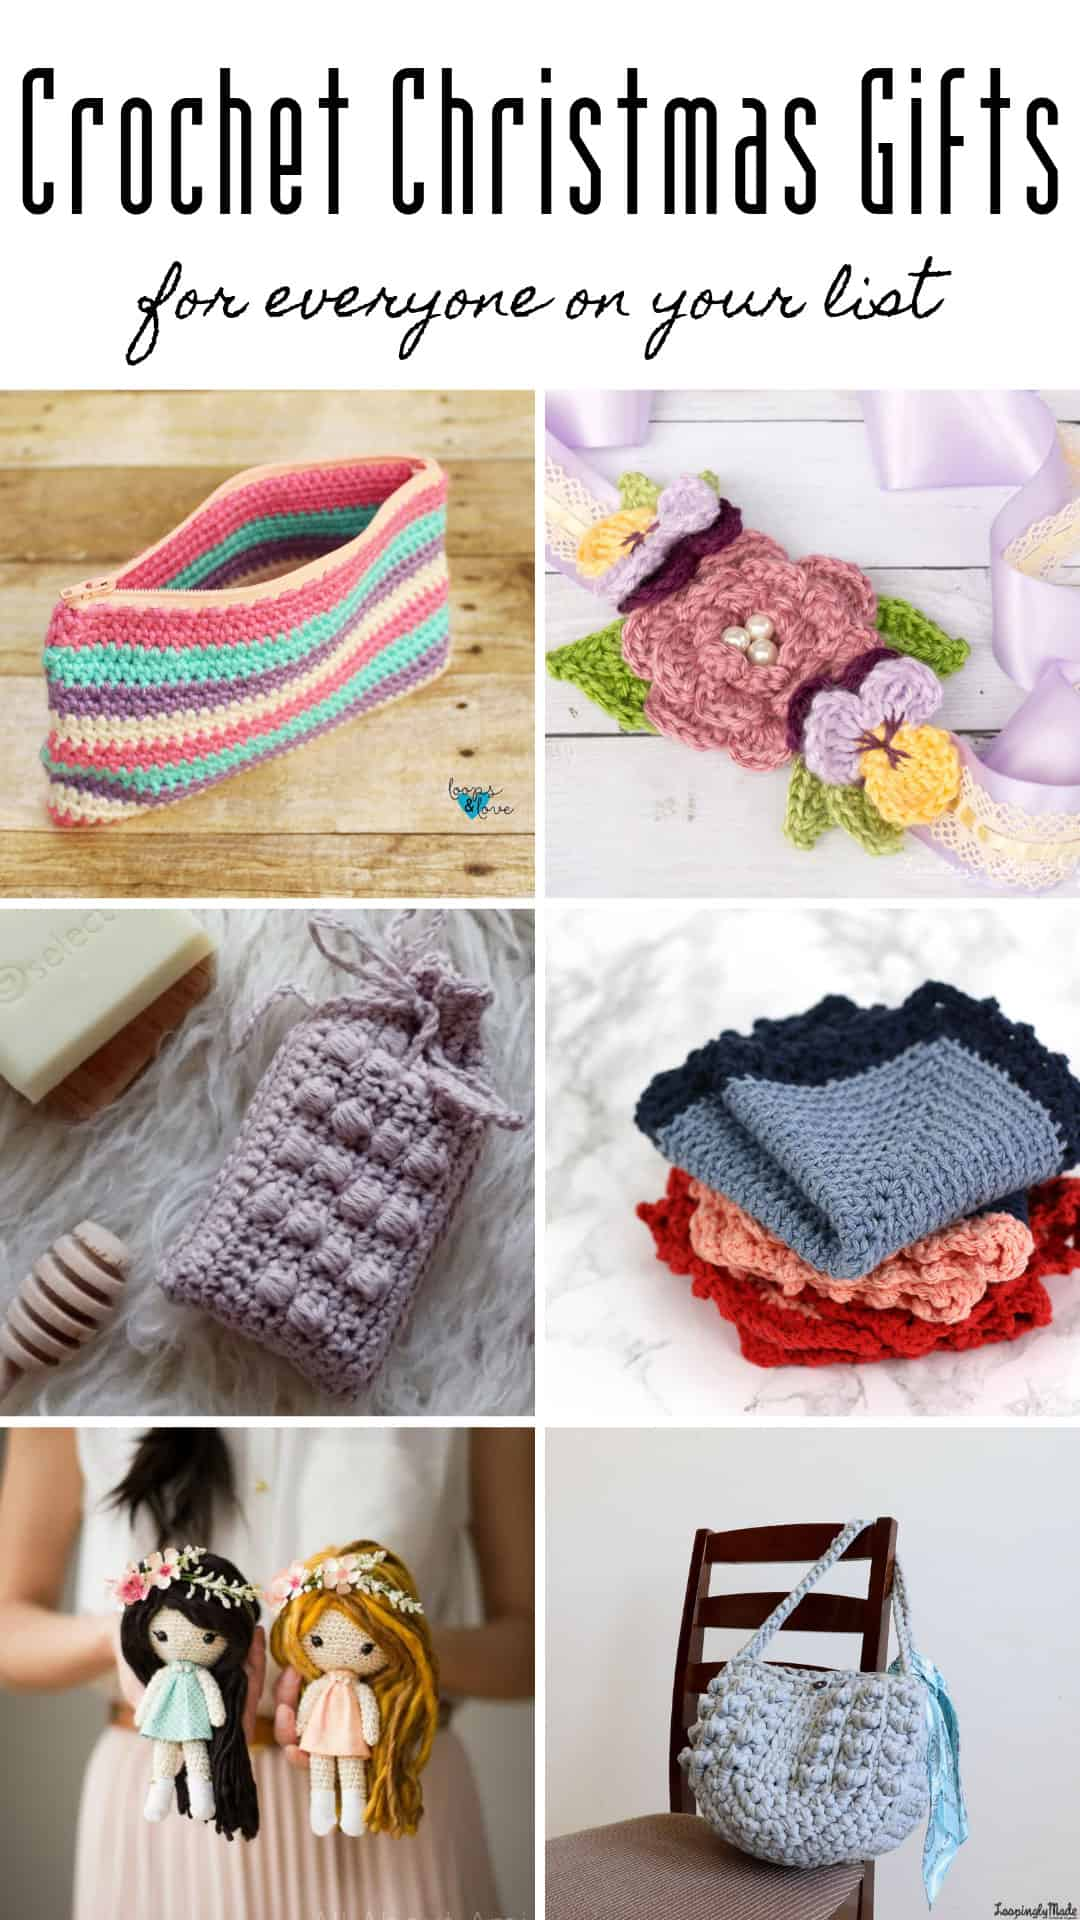 These Christmas gifts to crochet are fabulous and there really is something here for everyone!